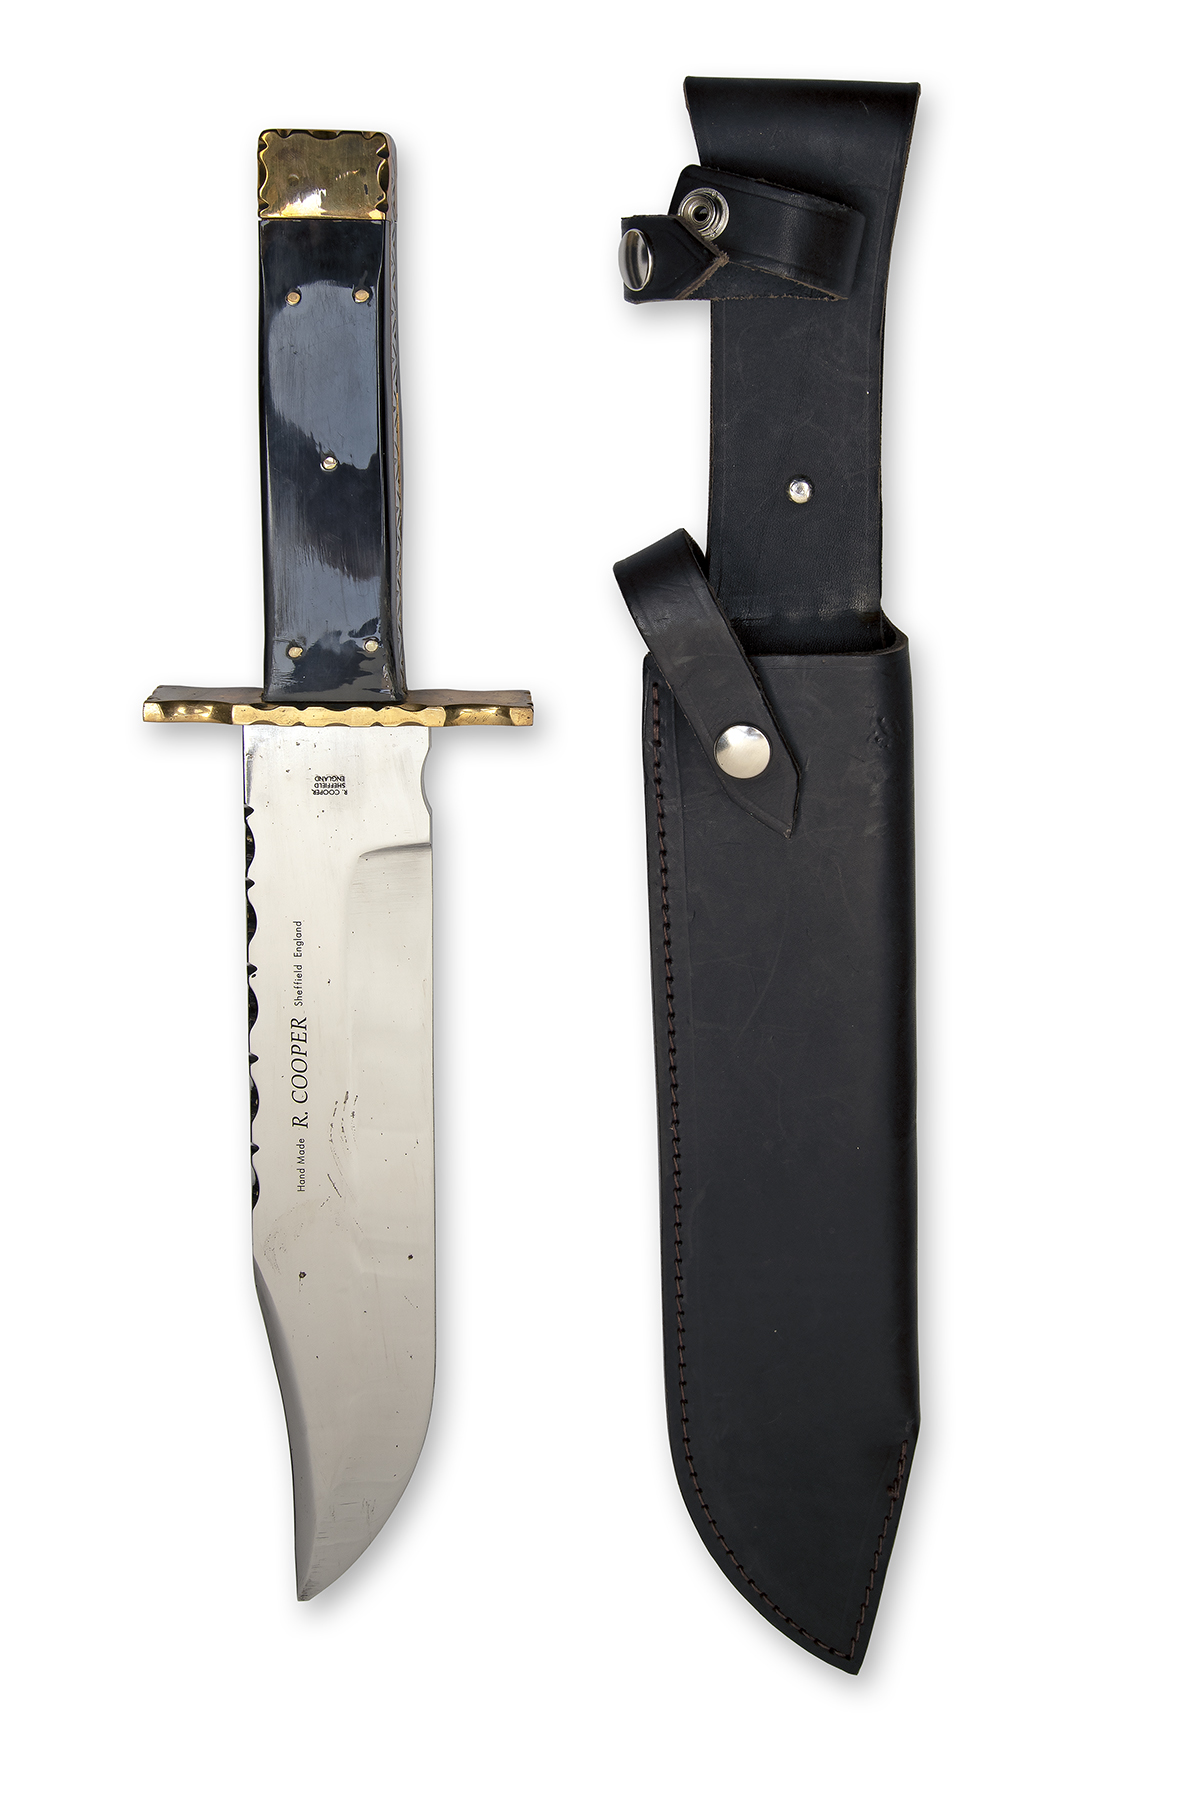 R. COOPER, SHEFFIELD A MASSIVE CUSTOM BOWIE-KNIFE, with 10in. clip-point blade false edged for the